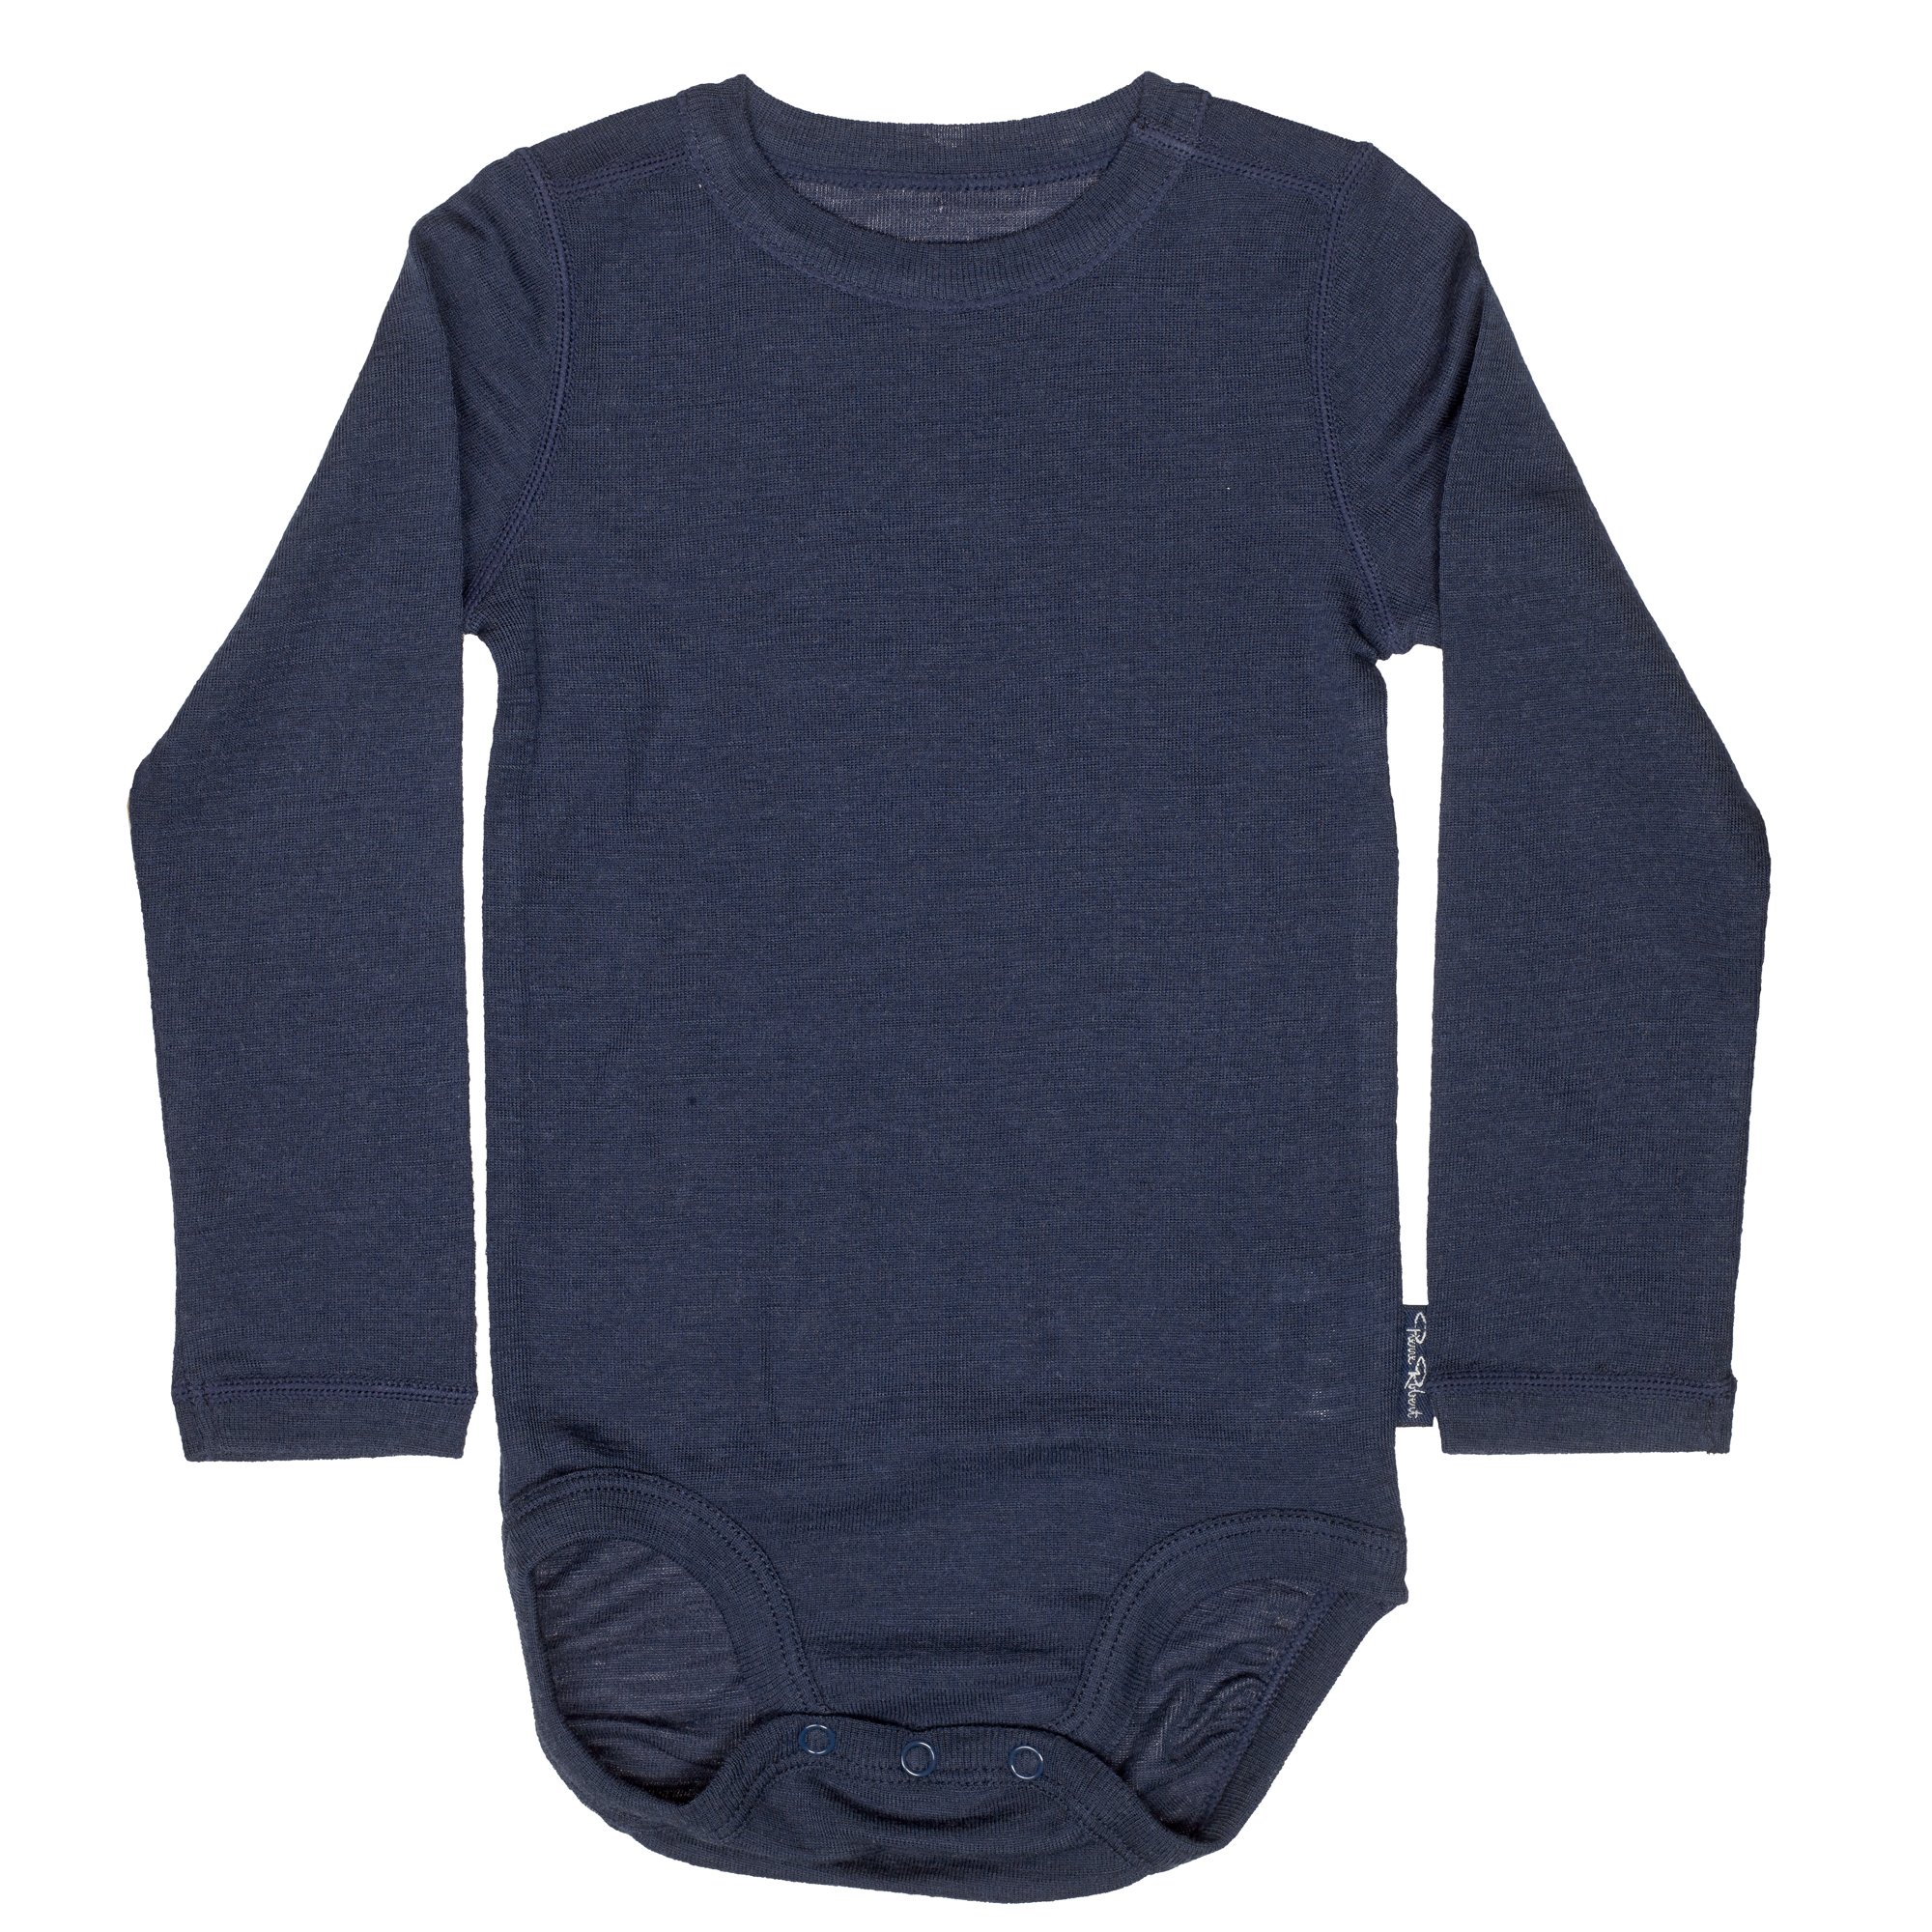 https://www.pierrerobert.no/on/demandware.static/-/Sites-Orkla-PRG-Library/fi_FI/dw52a758bd/Baby Wool Body Navy_2000x2000.jpg